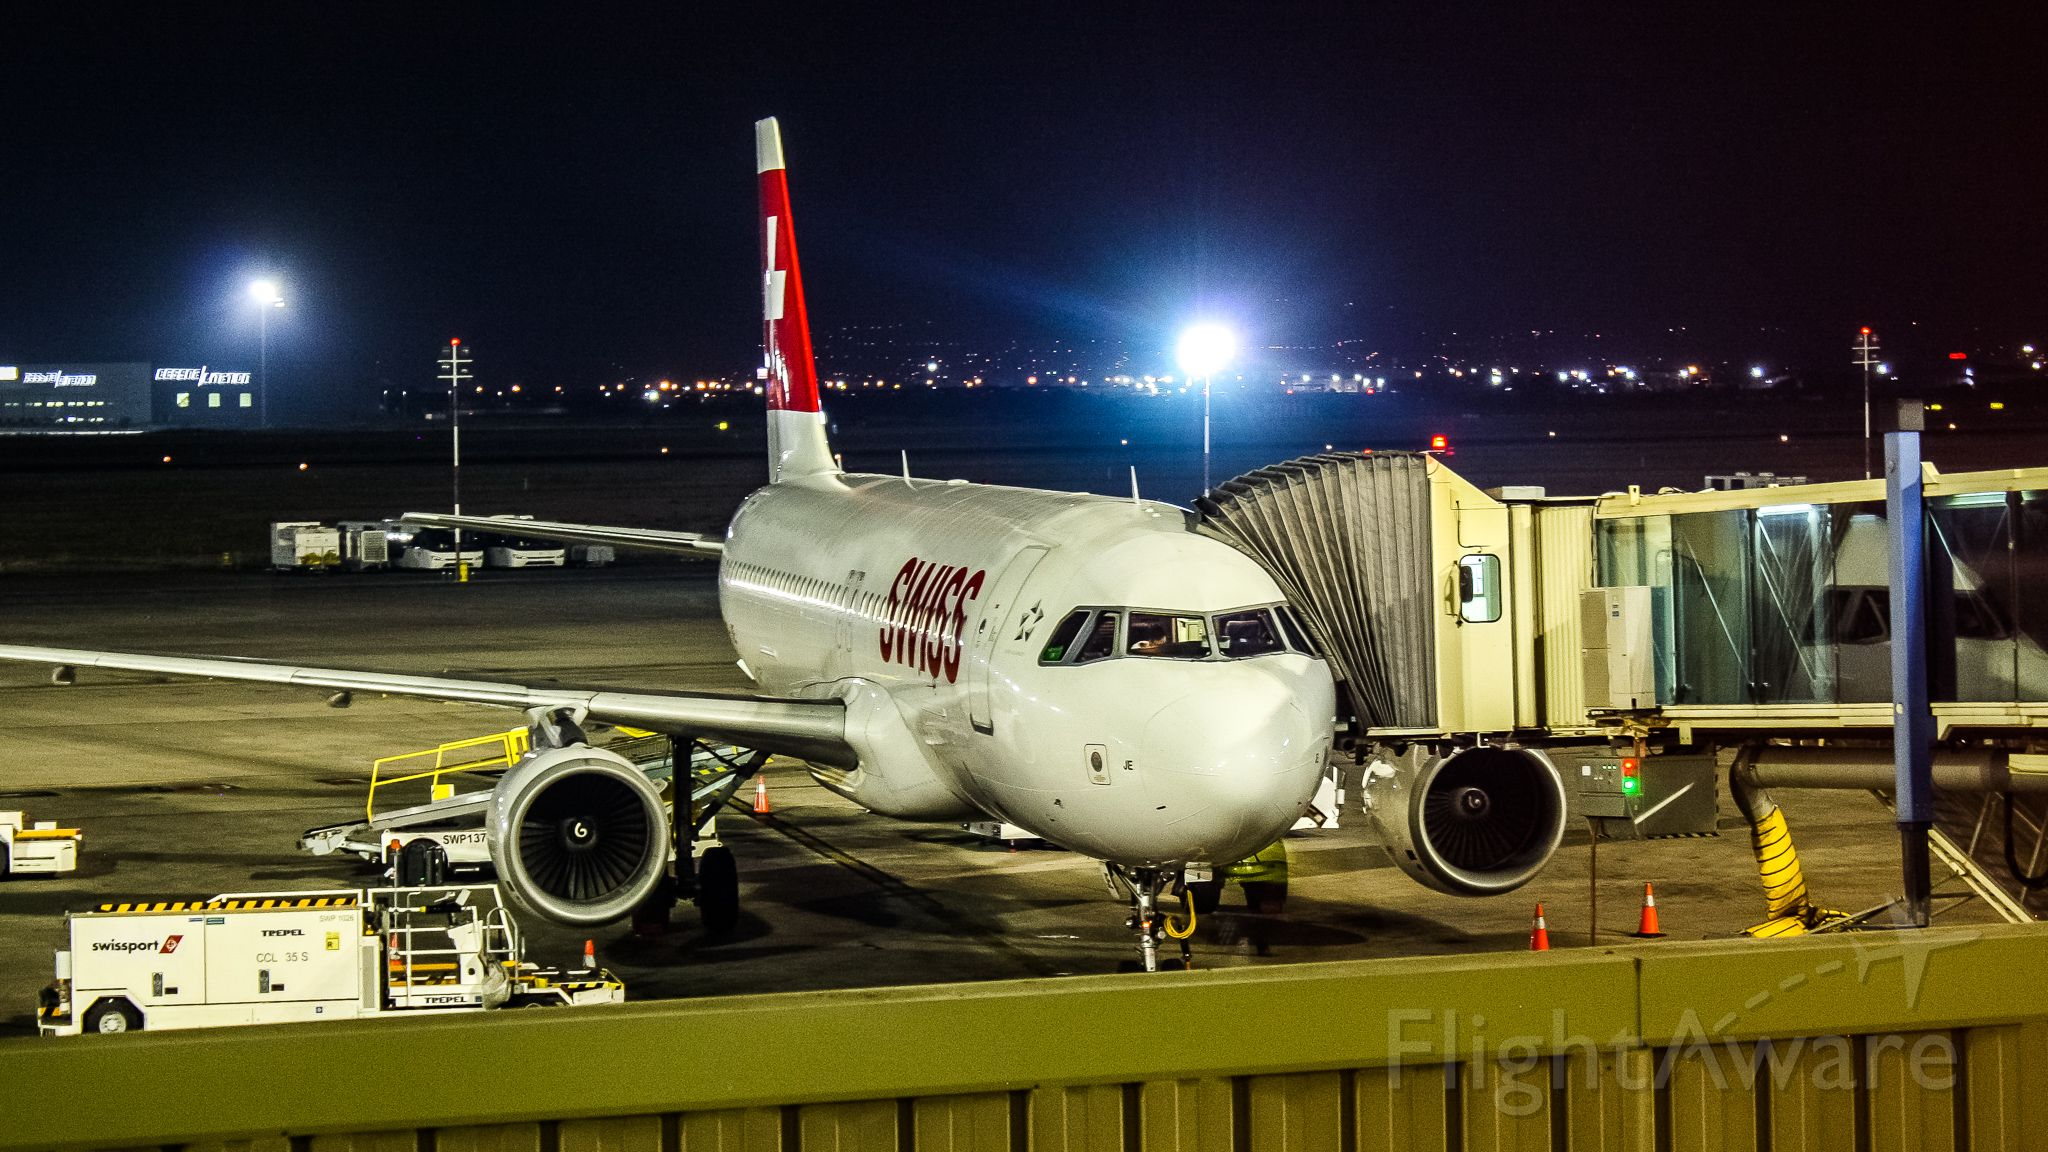 Airbus A320 (HB-IJE)